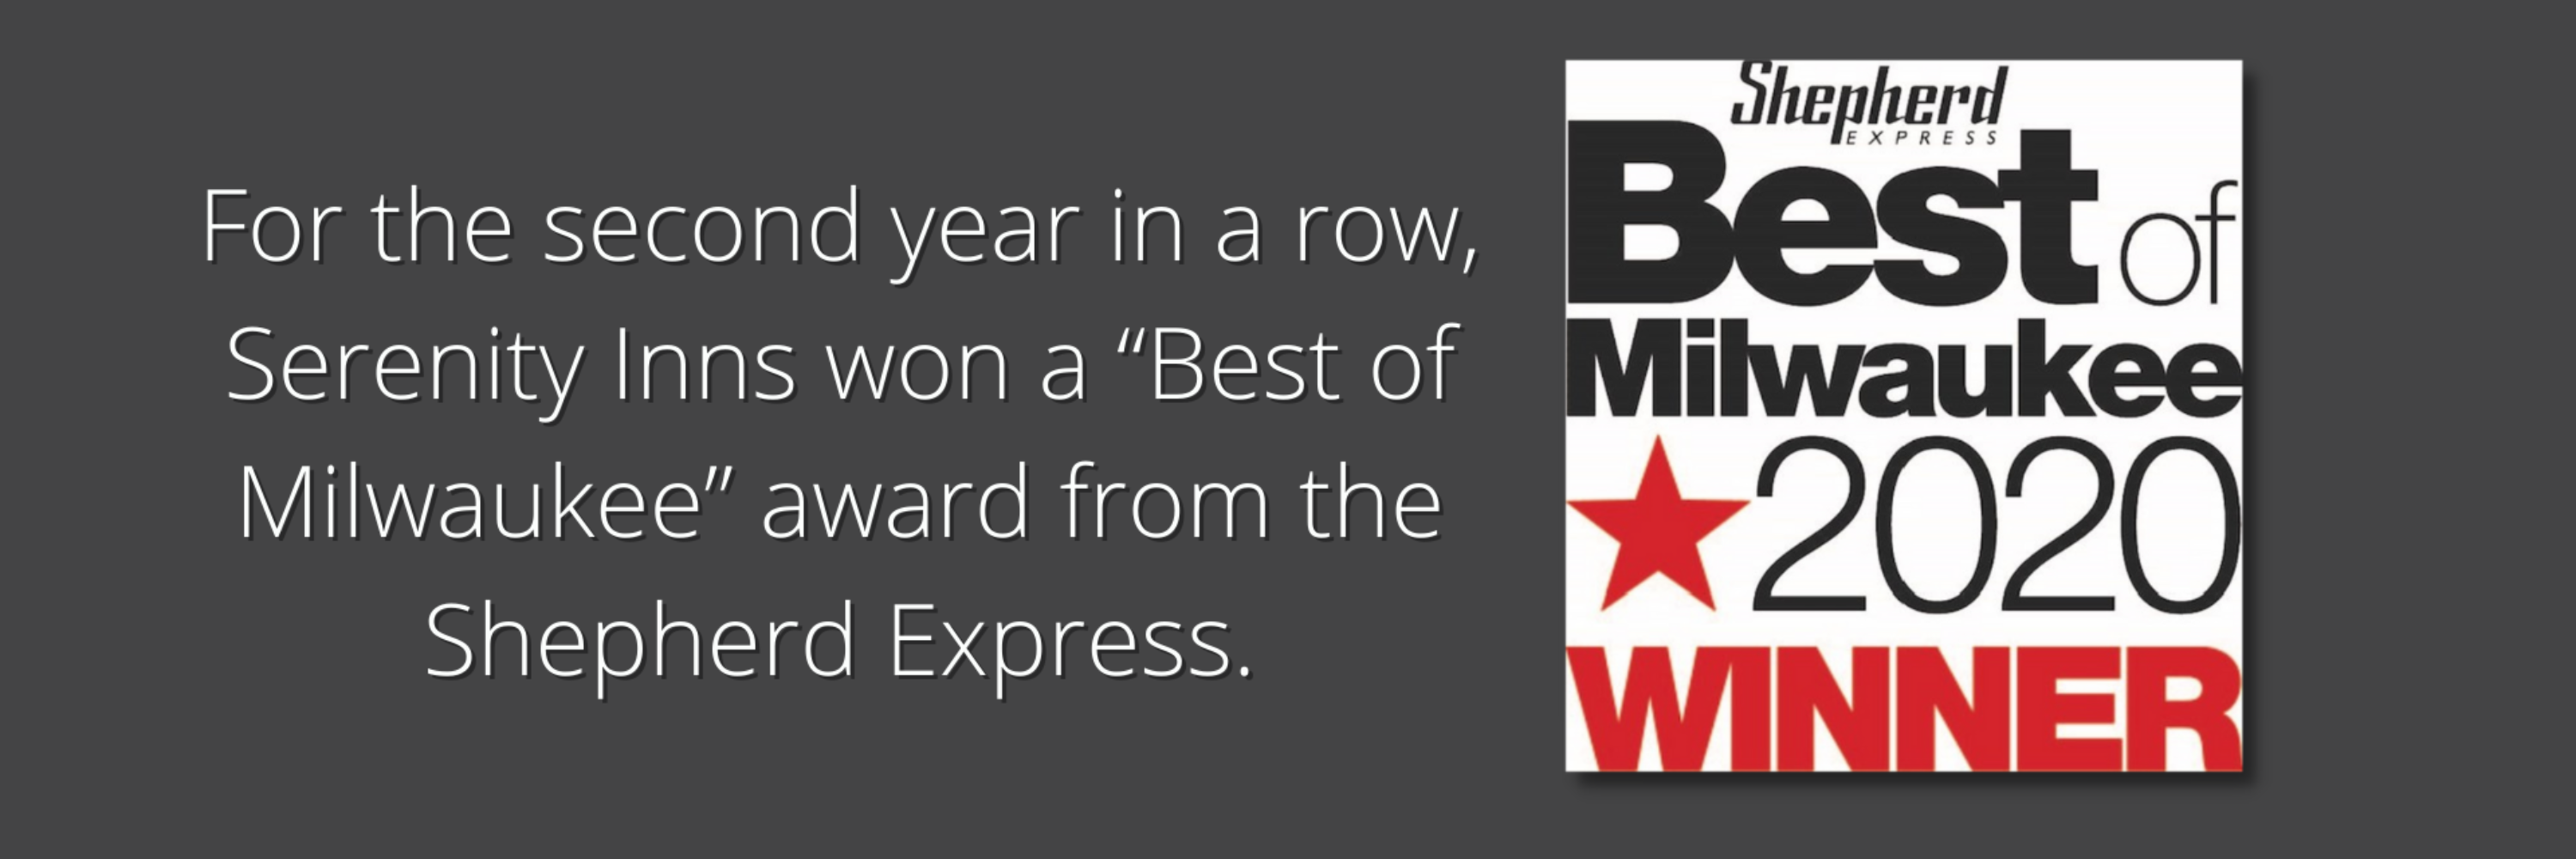 "For the second year in a row, Serenity Inns won a ""Best of Milwaukee"" award from the Shepherd Express. (2)"